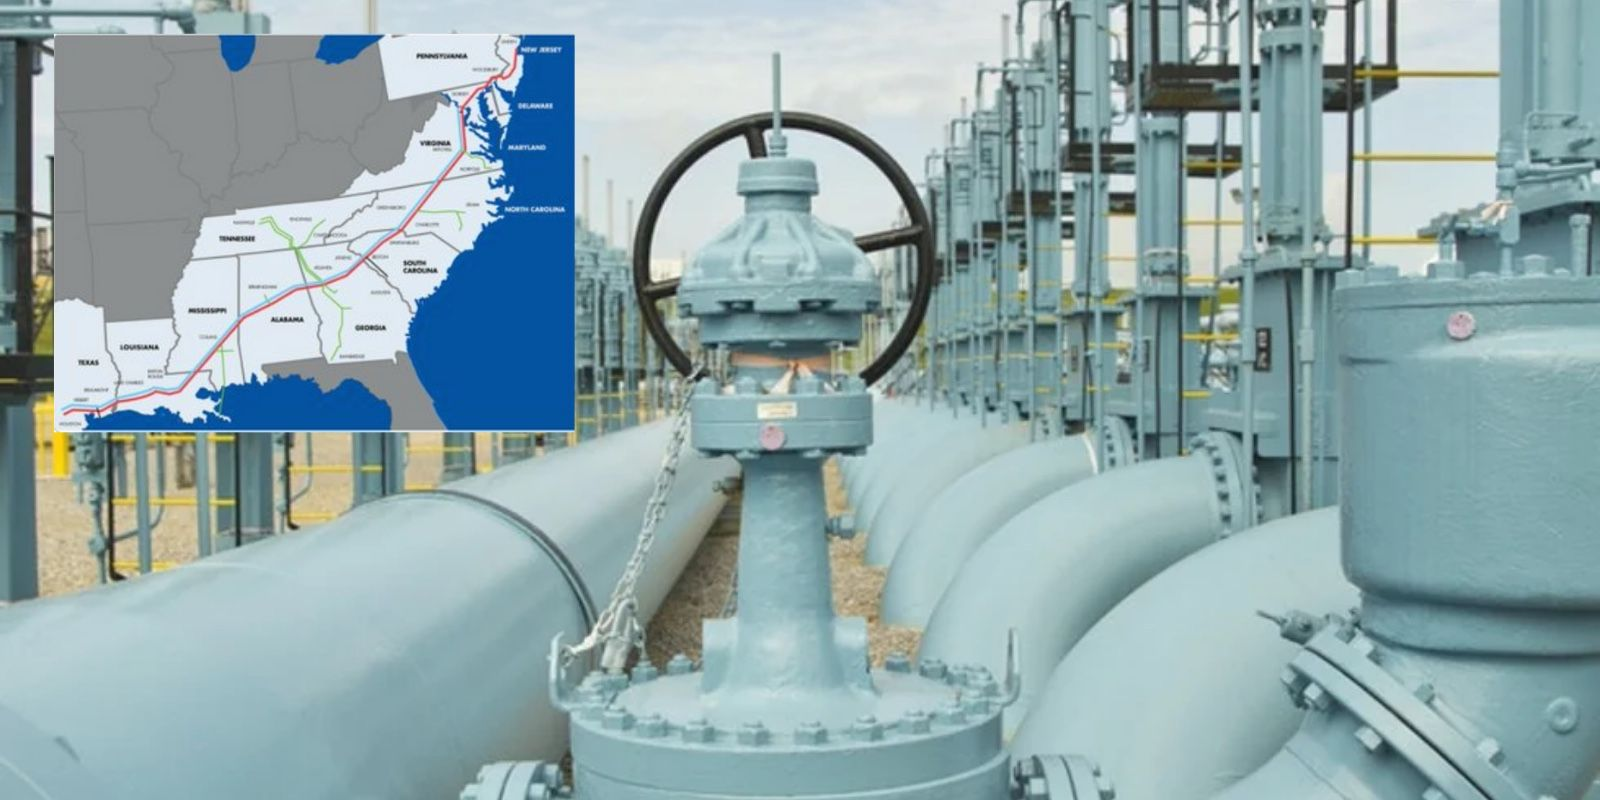 Increase in gas prices looms after Colonial Pipeline cyberattack